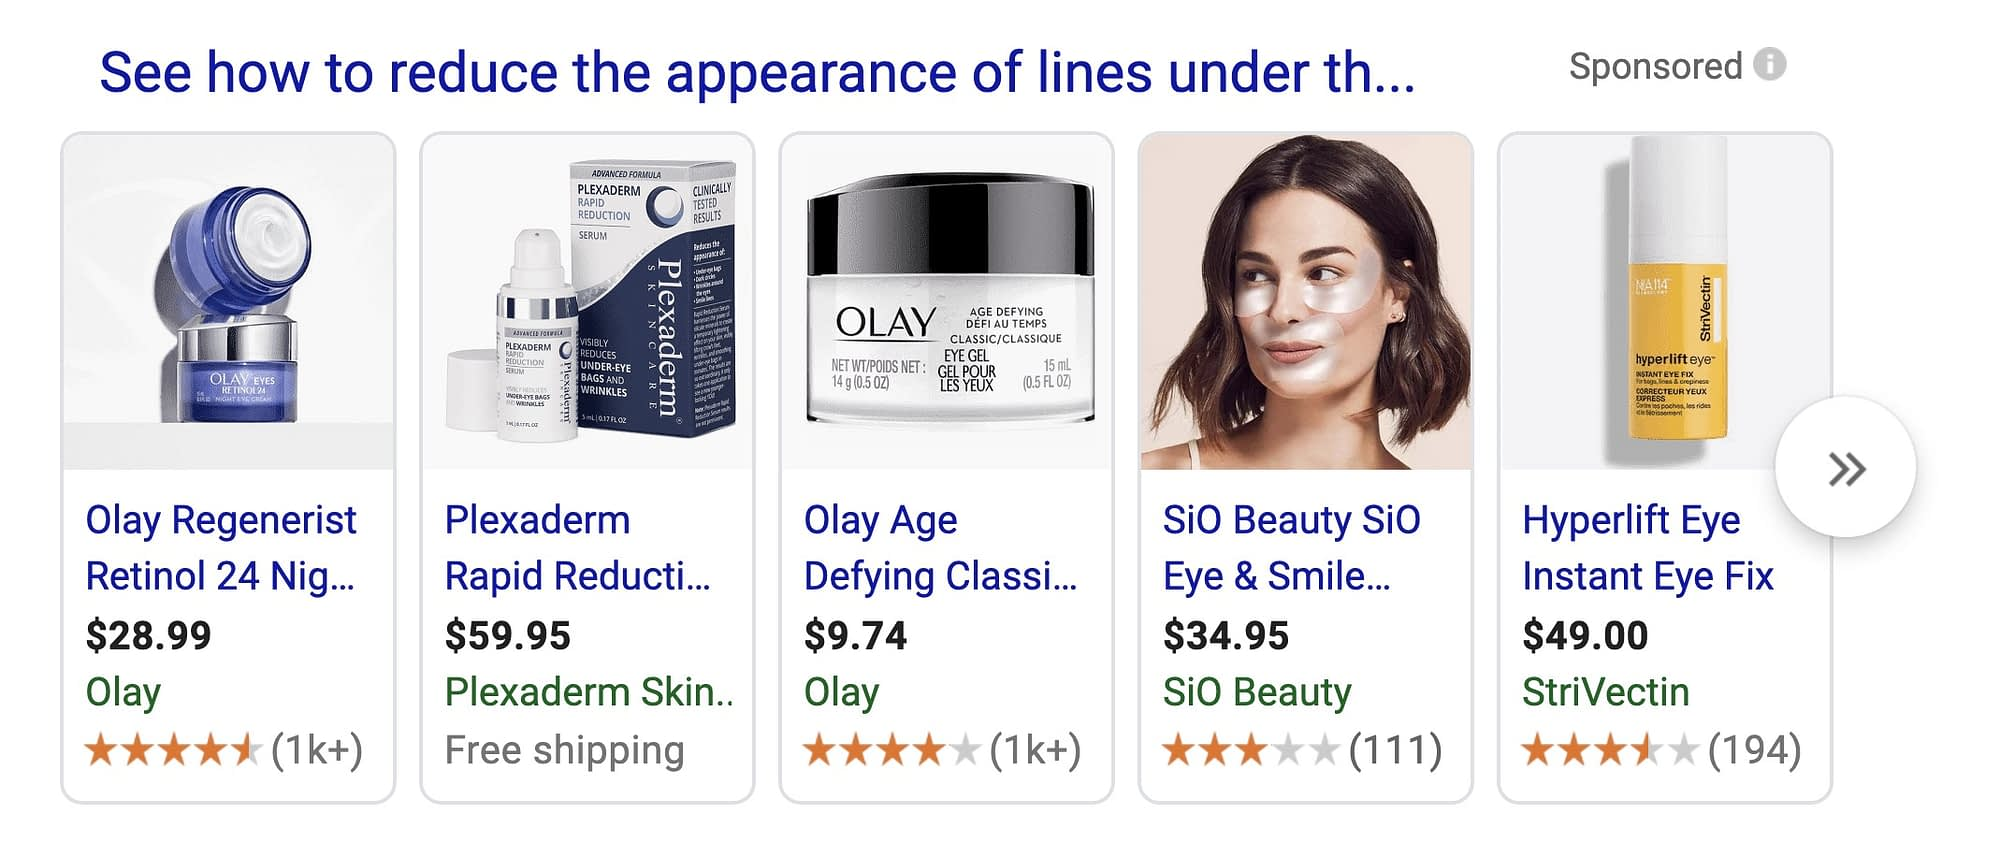 However, while all of those Google searches may not return a long-form article, if someone is searching how to reduce the appearance of fine lines under aging eyes, there is a good chance a long-form article will be.